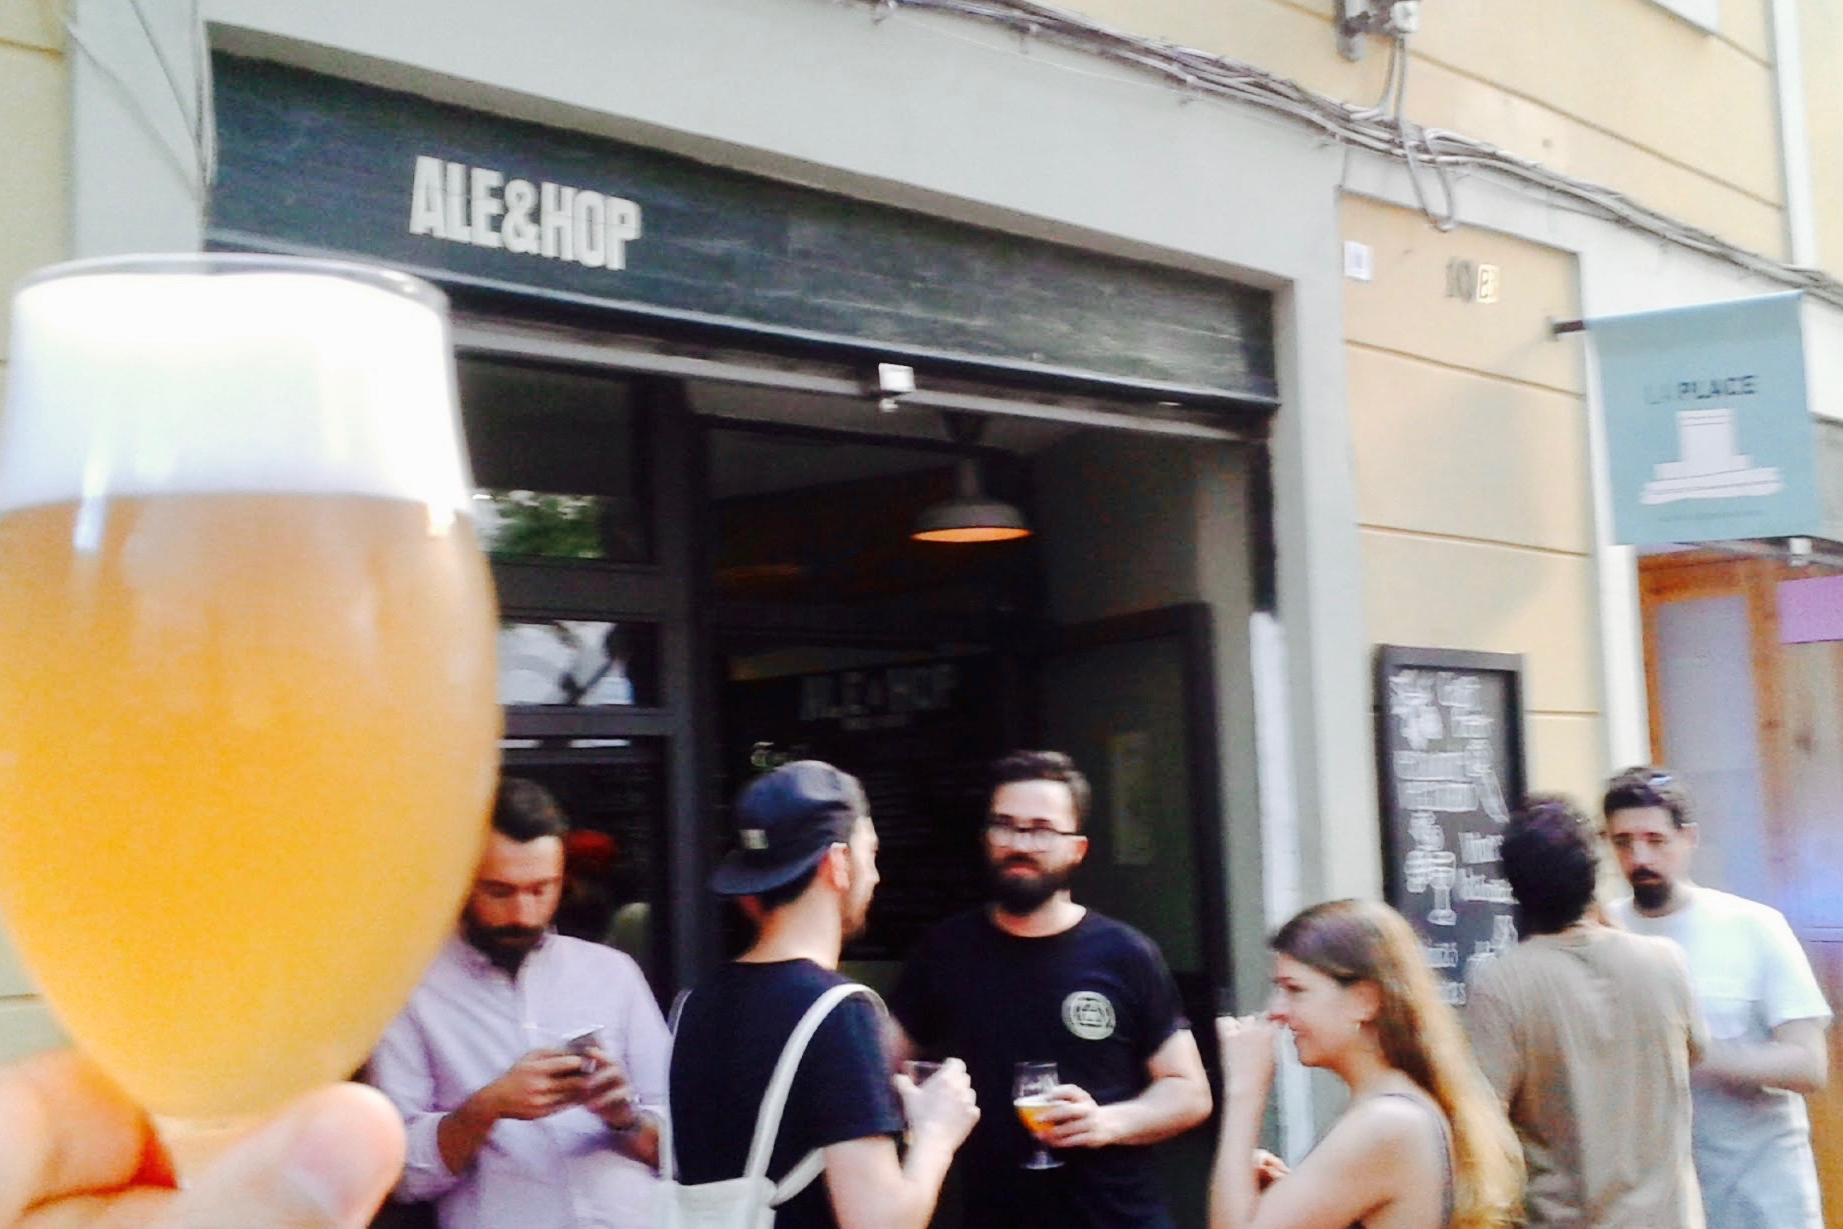 Cheers to Ale & Hop in Barcelona